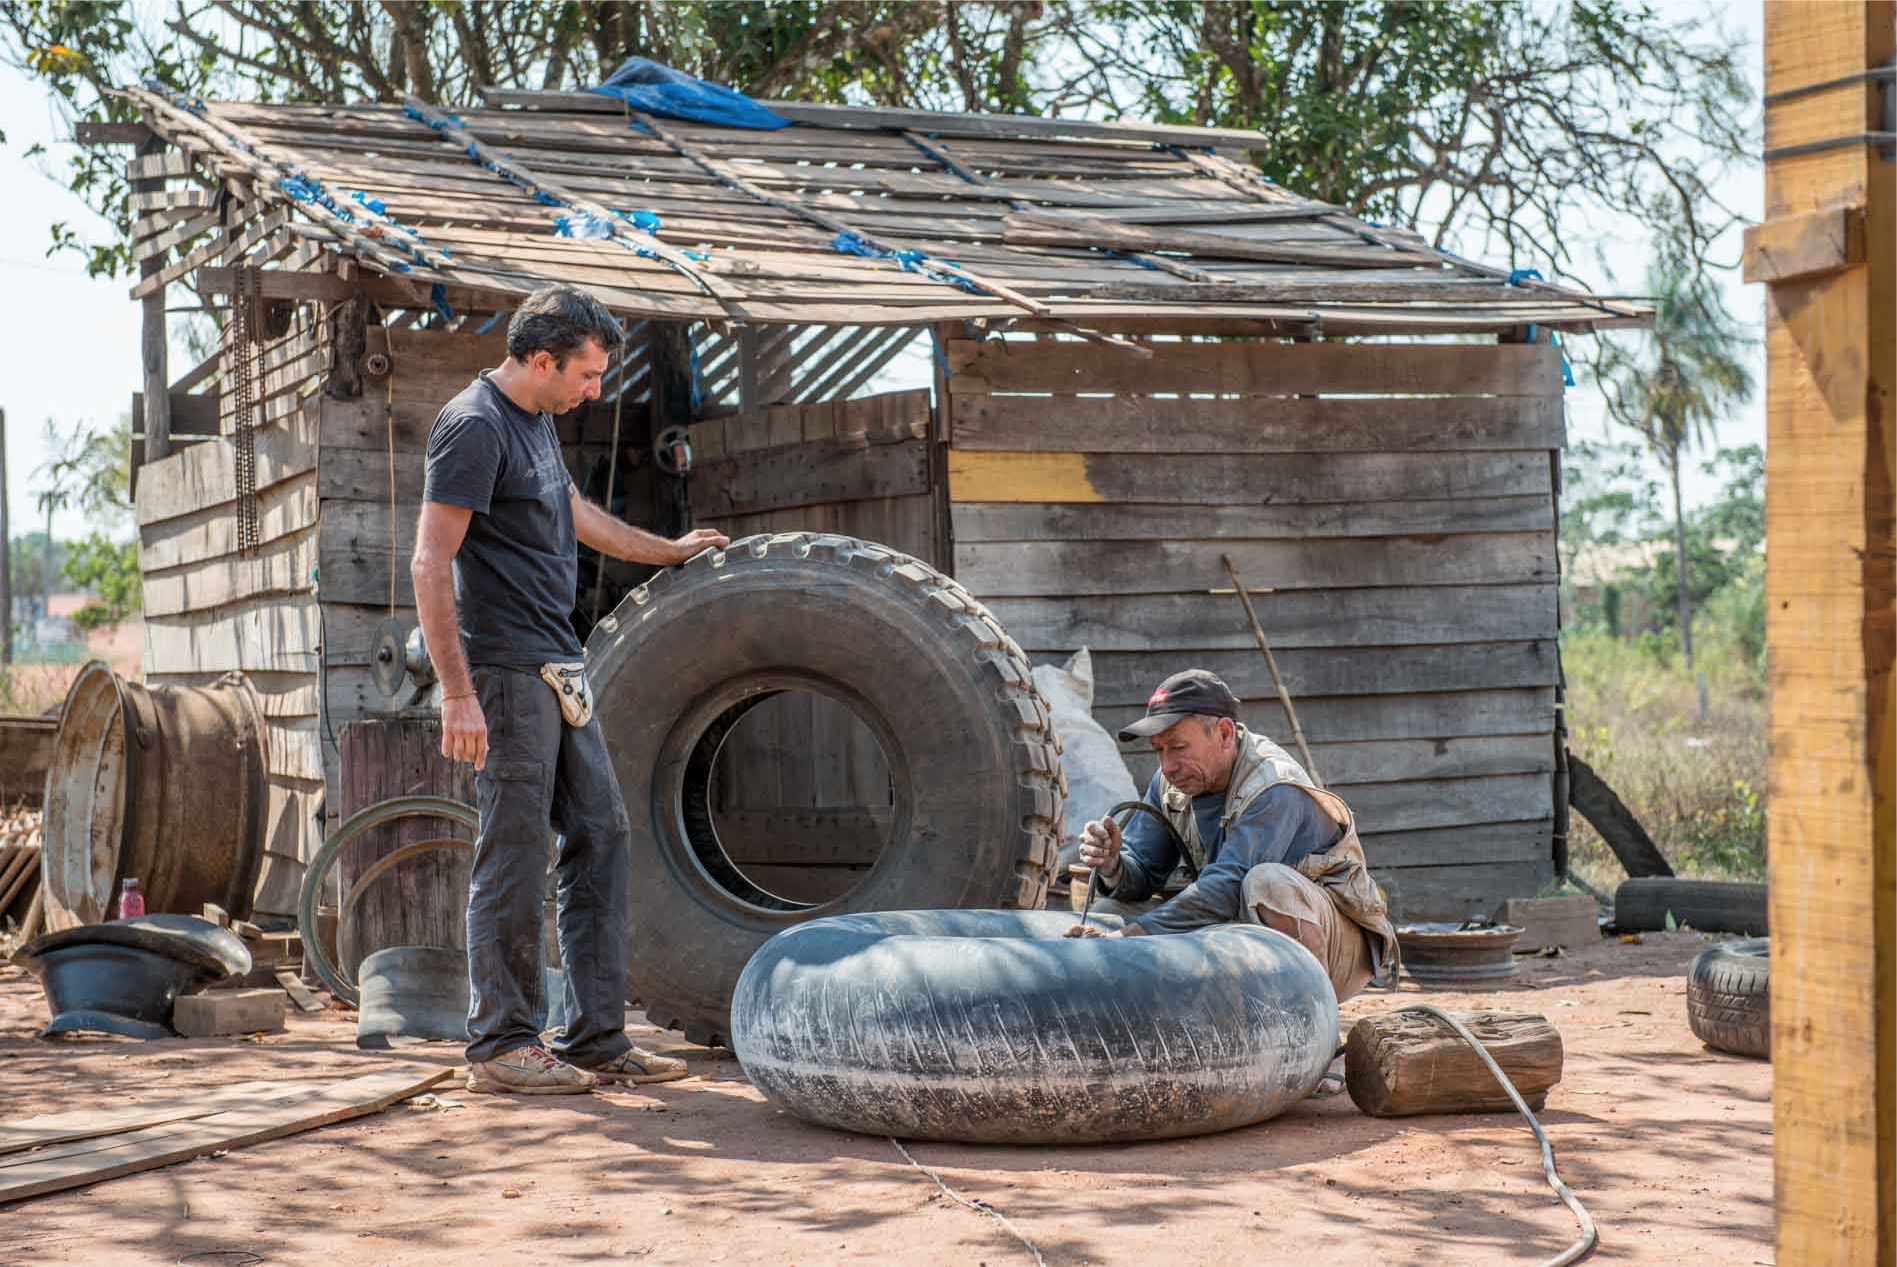 tyre change in bolivia